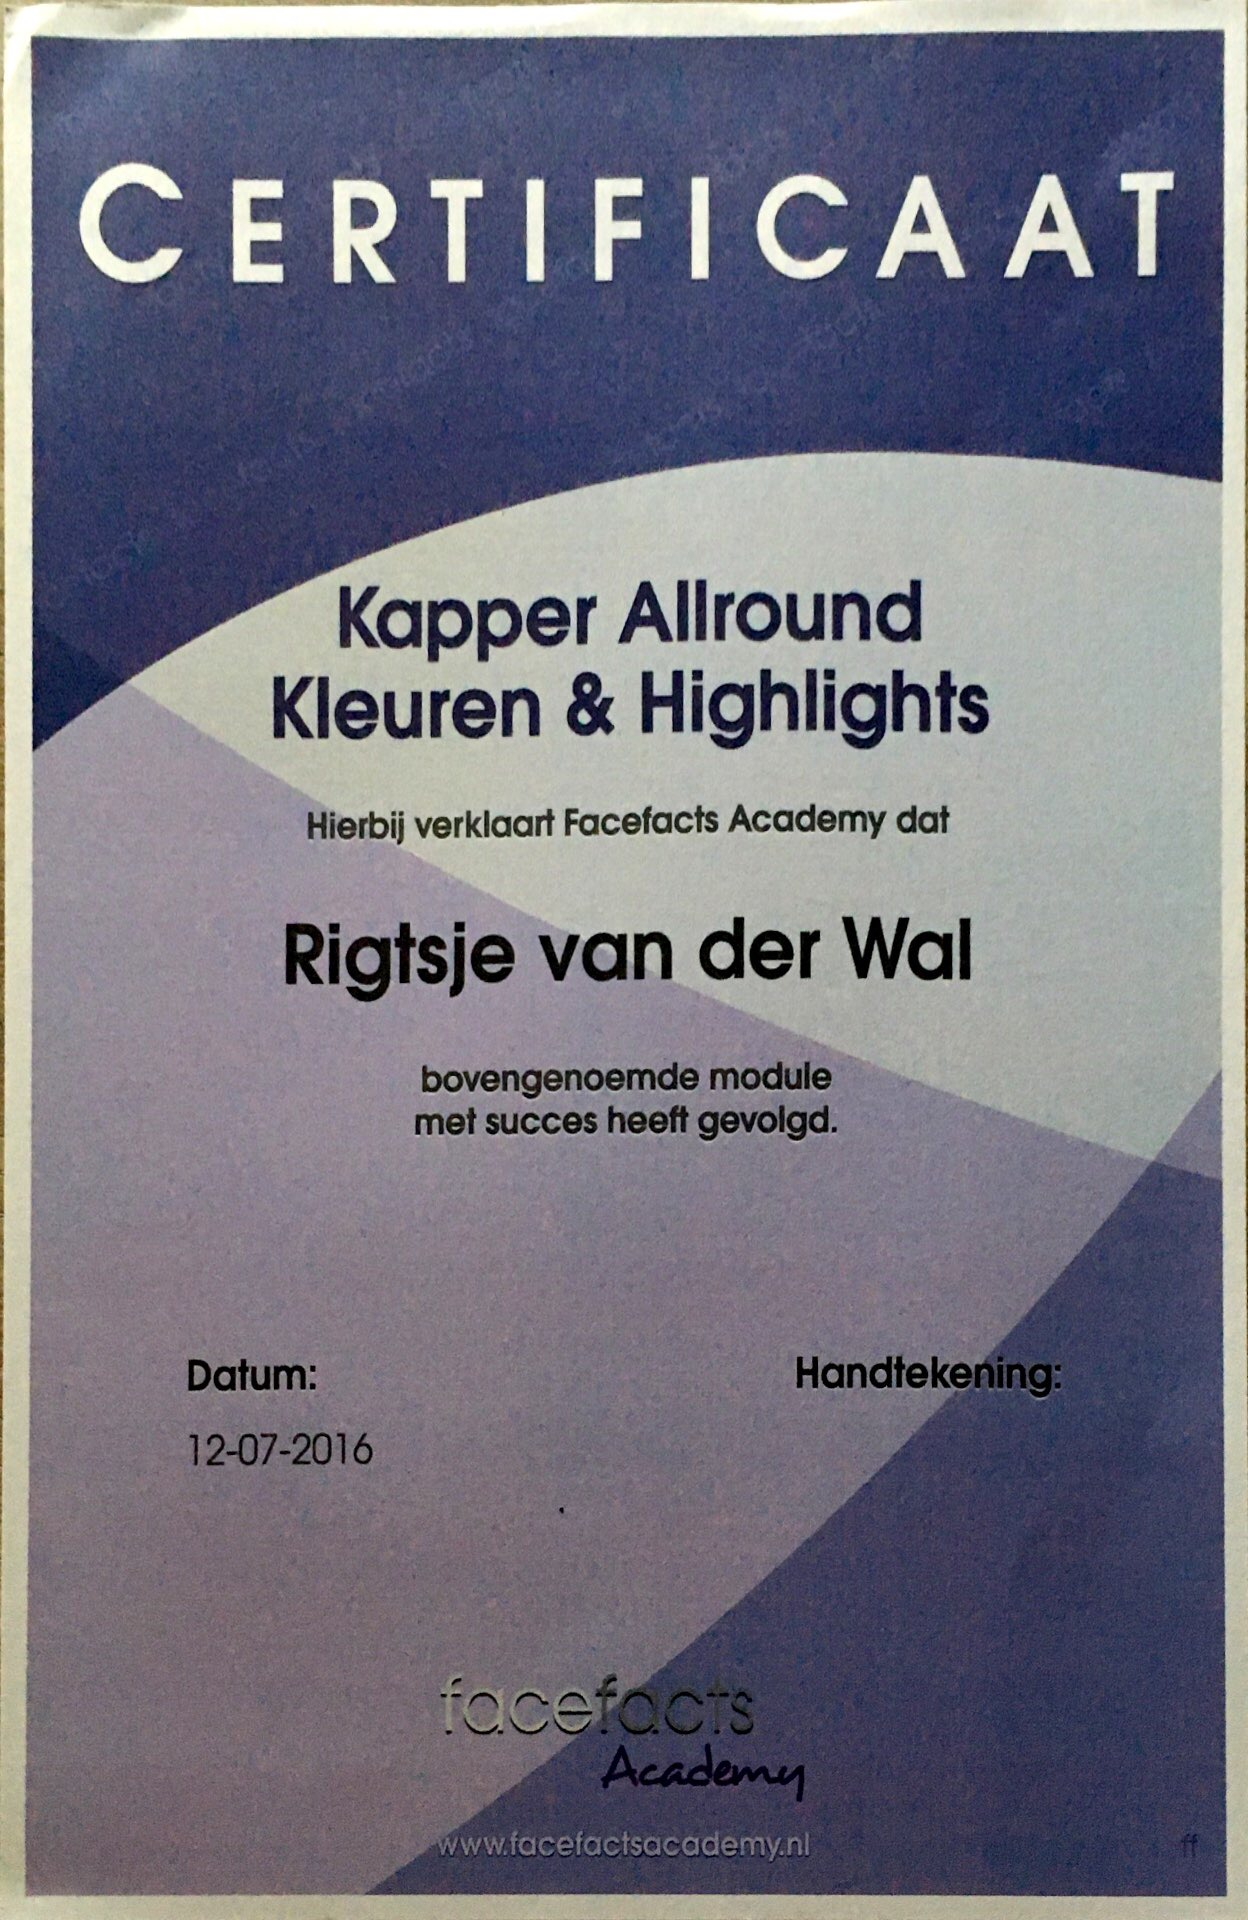 Kapper Allround Kleuren & highlights